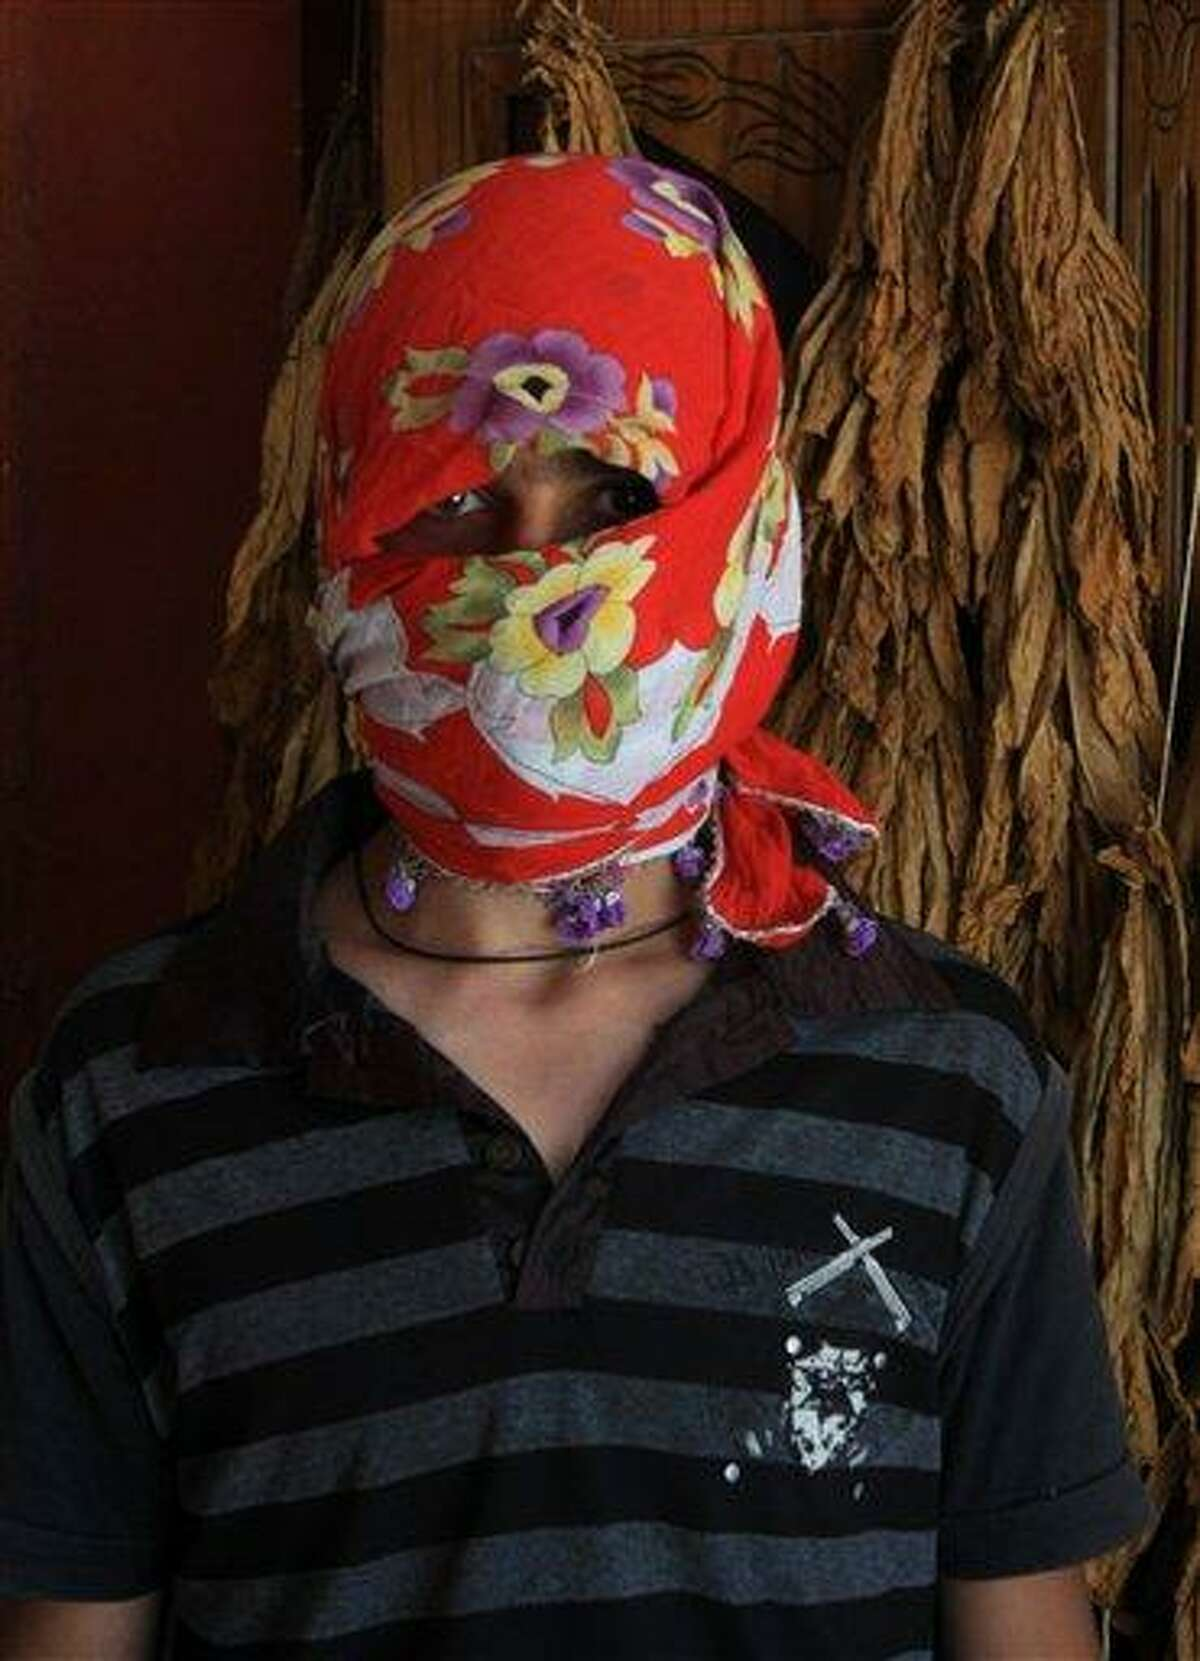 A Syrian boy who crossed the Syria-Turkey border Wednesday covers his face while he speaks to journalists in the Turkish village of Guvecci in Hatay province, Turkey, Thursday, June 9, 2011. Turkey said Wednesday it would open the border to Syrians fleeing violence.(AP Photo/Selcan Hacaoglu)